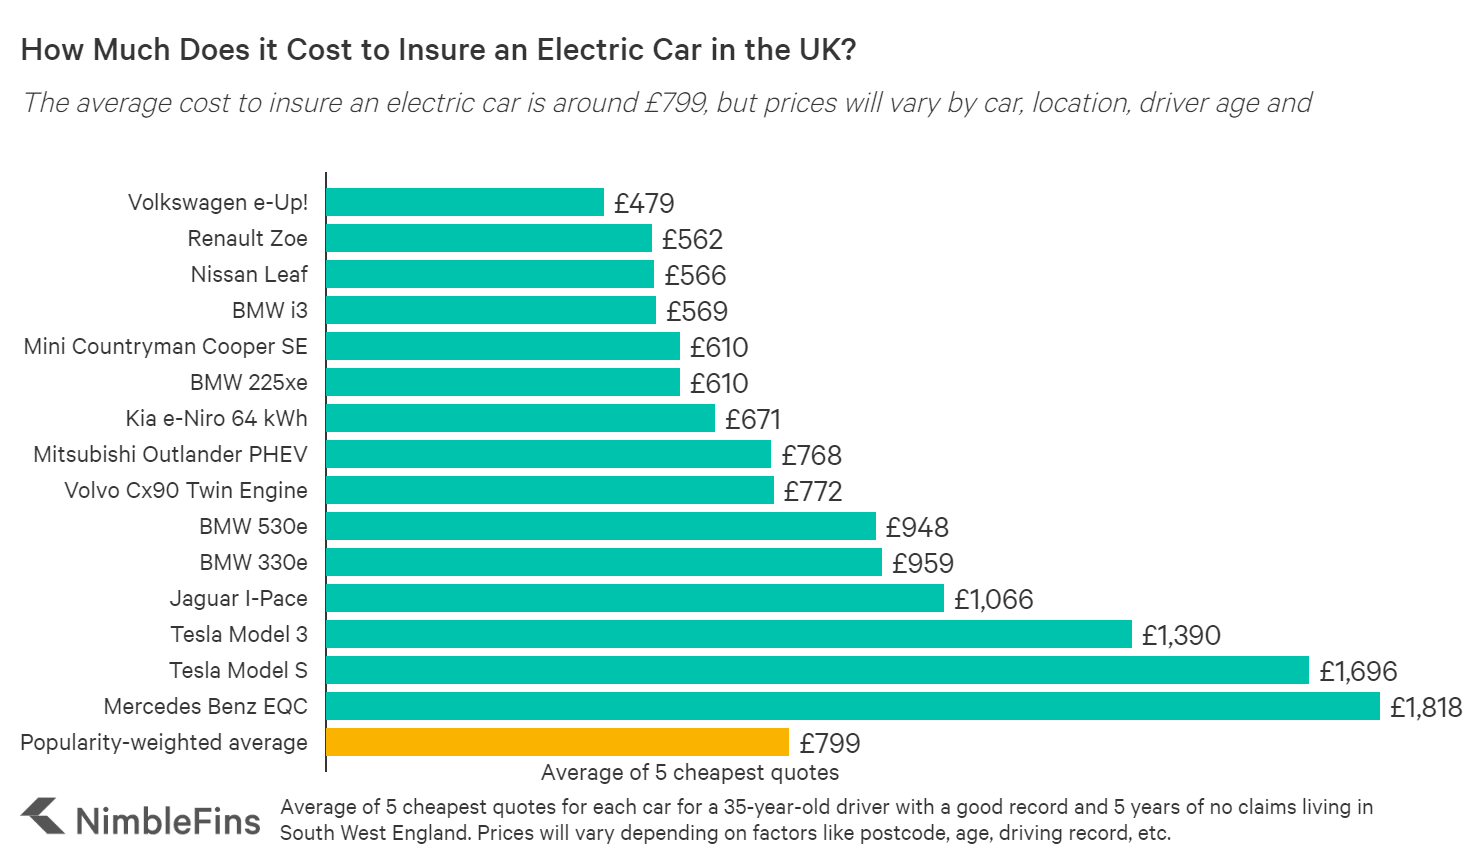 UK electric car insurance costs